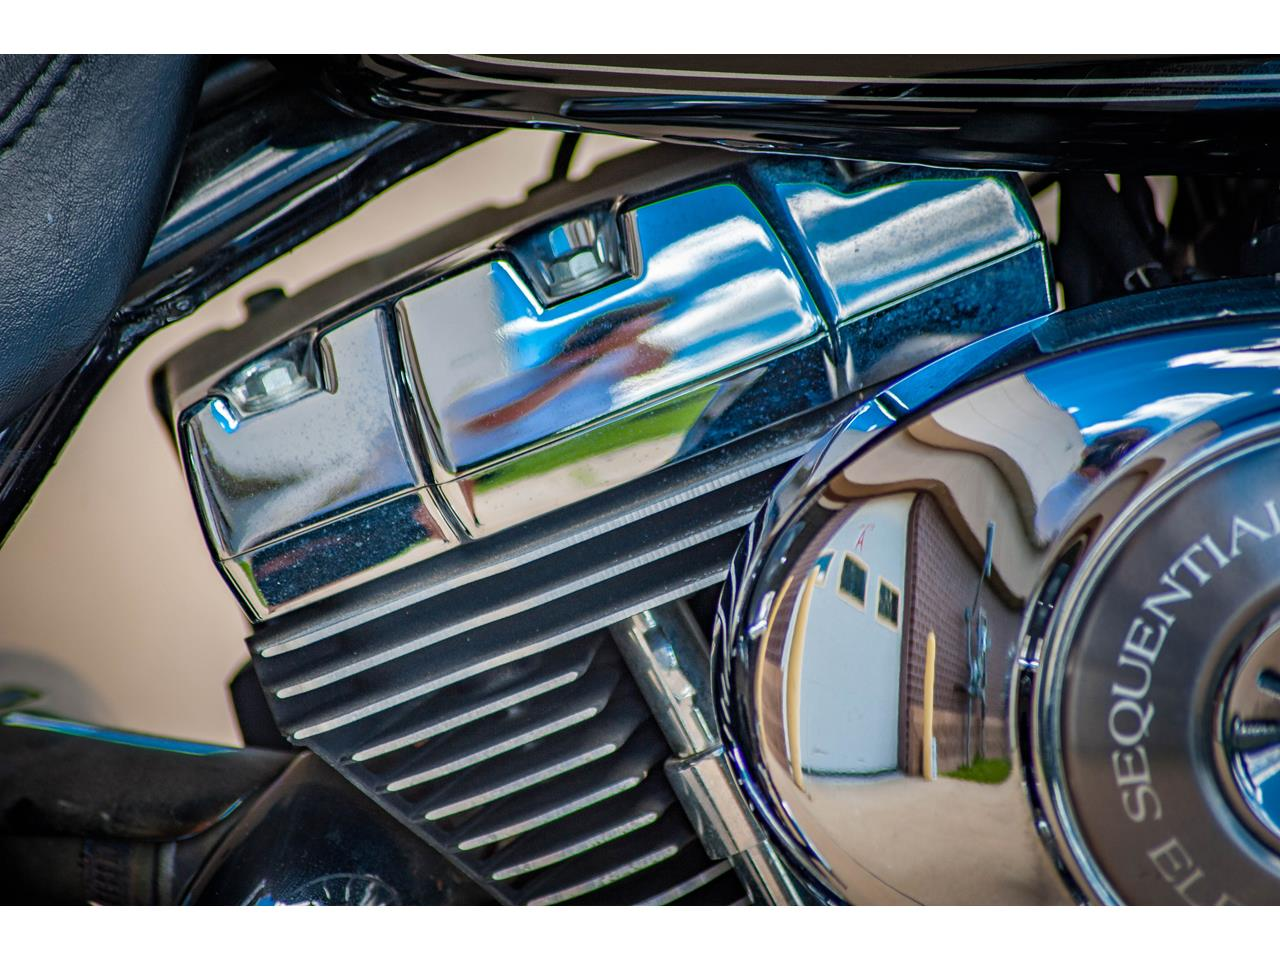 Large Picture of 2004 Harley-Davidson Motorcycle located in Illinois - $12,000.00 Offered by Gateway Classic Cars - St. Louis - QD6F